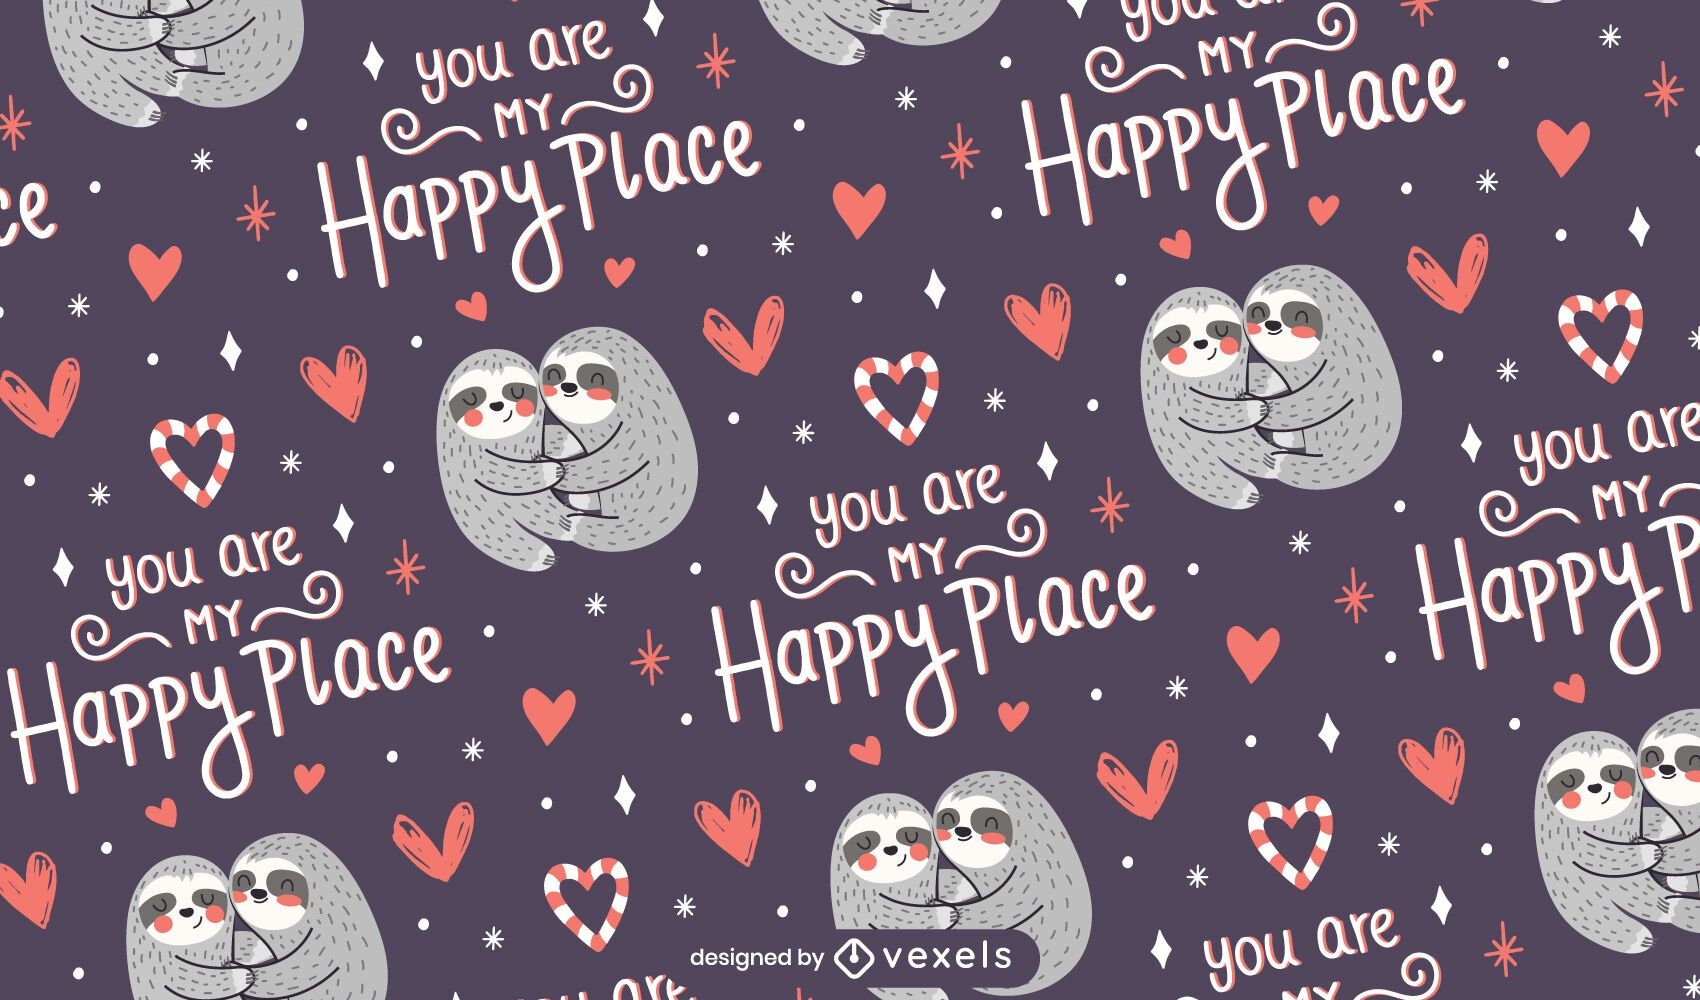 My happy place pattern design